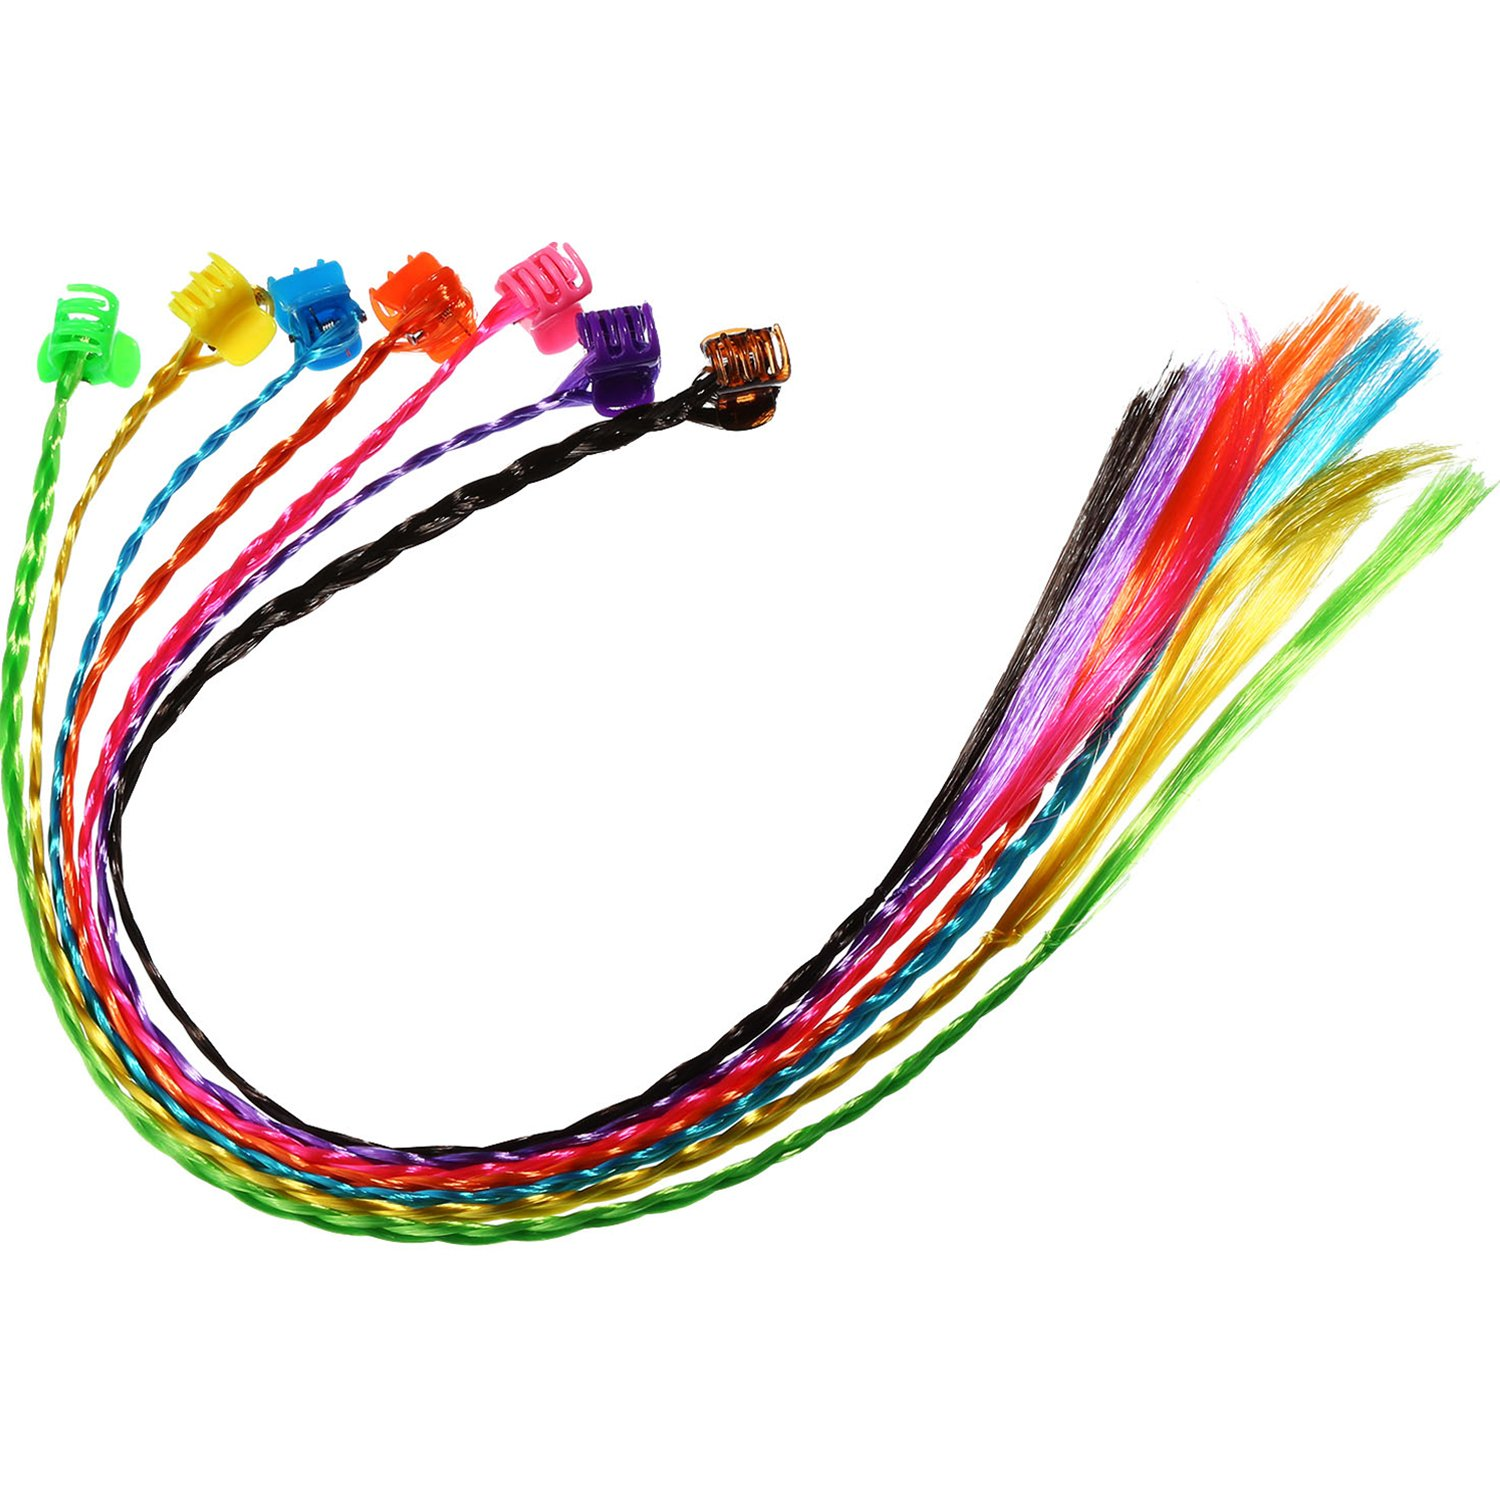 Bememo 21 Pieces Nylon Braided Hair Neon Hair Braid Extensions Attachments with Neon Clip Snaps for Birthday Party Favors and Children Performance 7 Colors